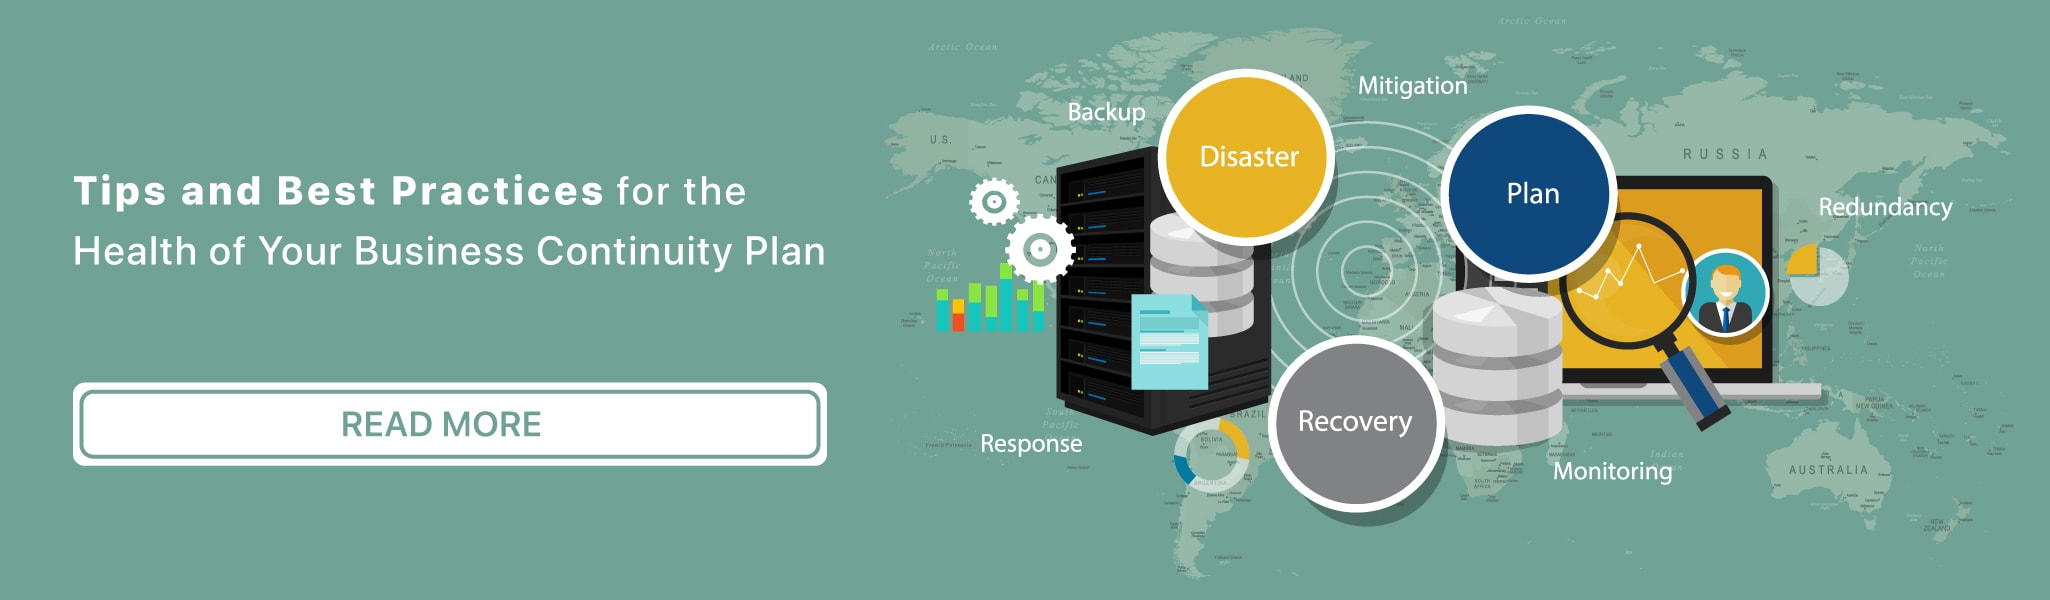 Now is the Time to Update Your Business Contingency Plan for Business Continuity